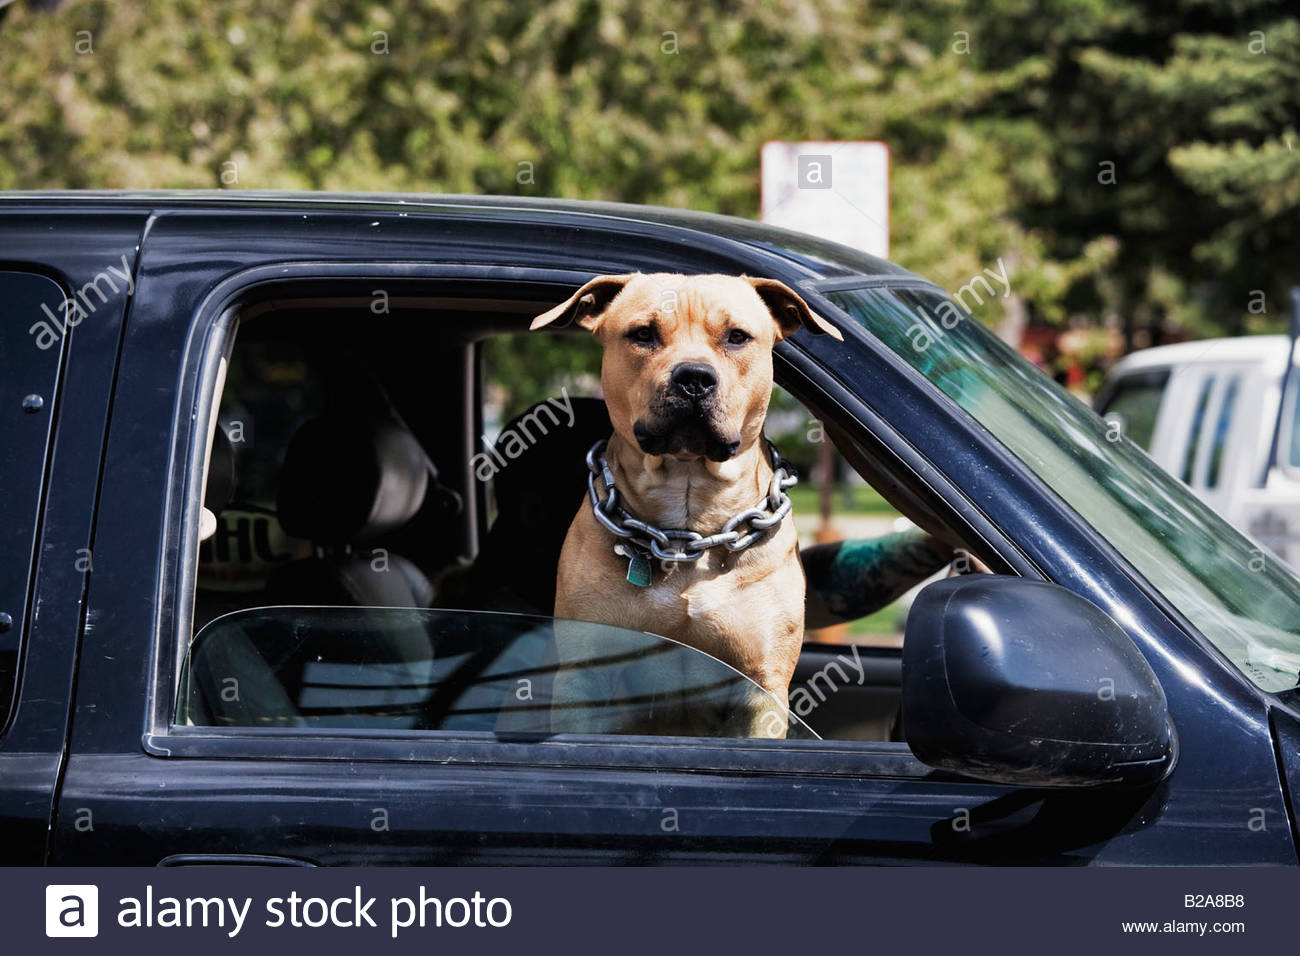 Pit Bull dog riding in front seat of pick up truck - Stock Image